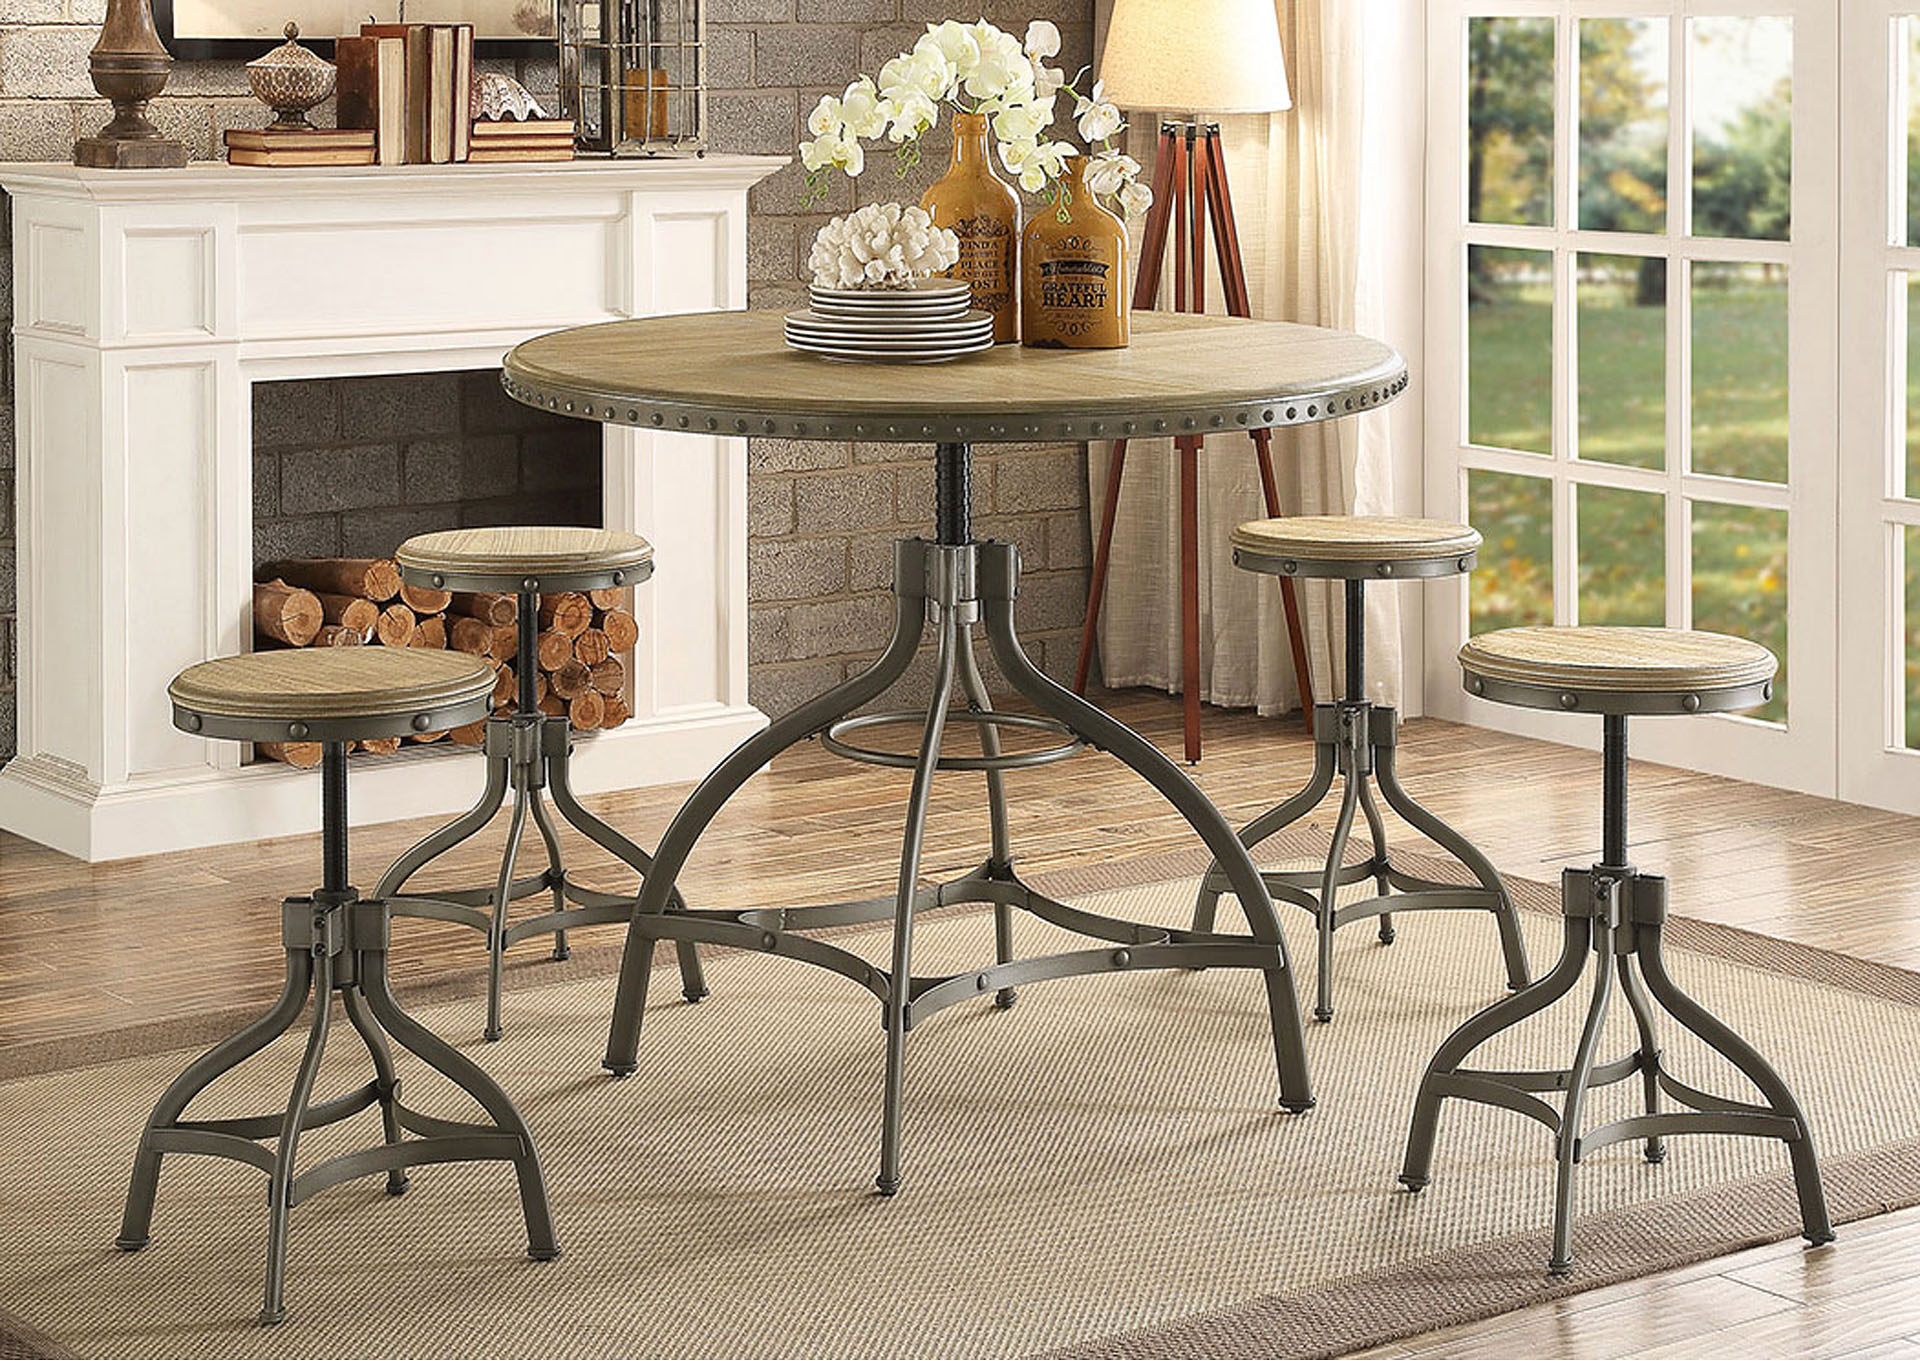 Round Adjustable Height Dining Table,Homelegance